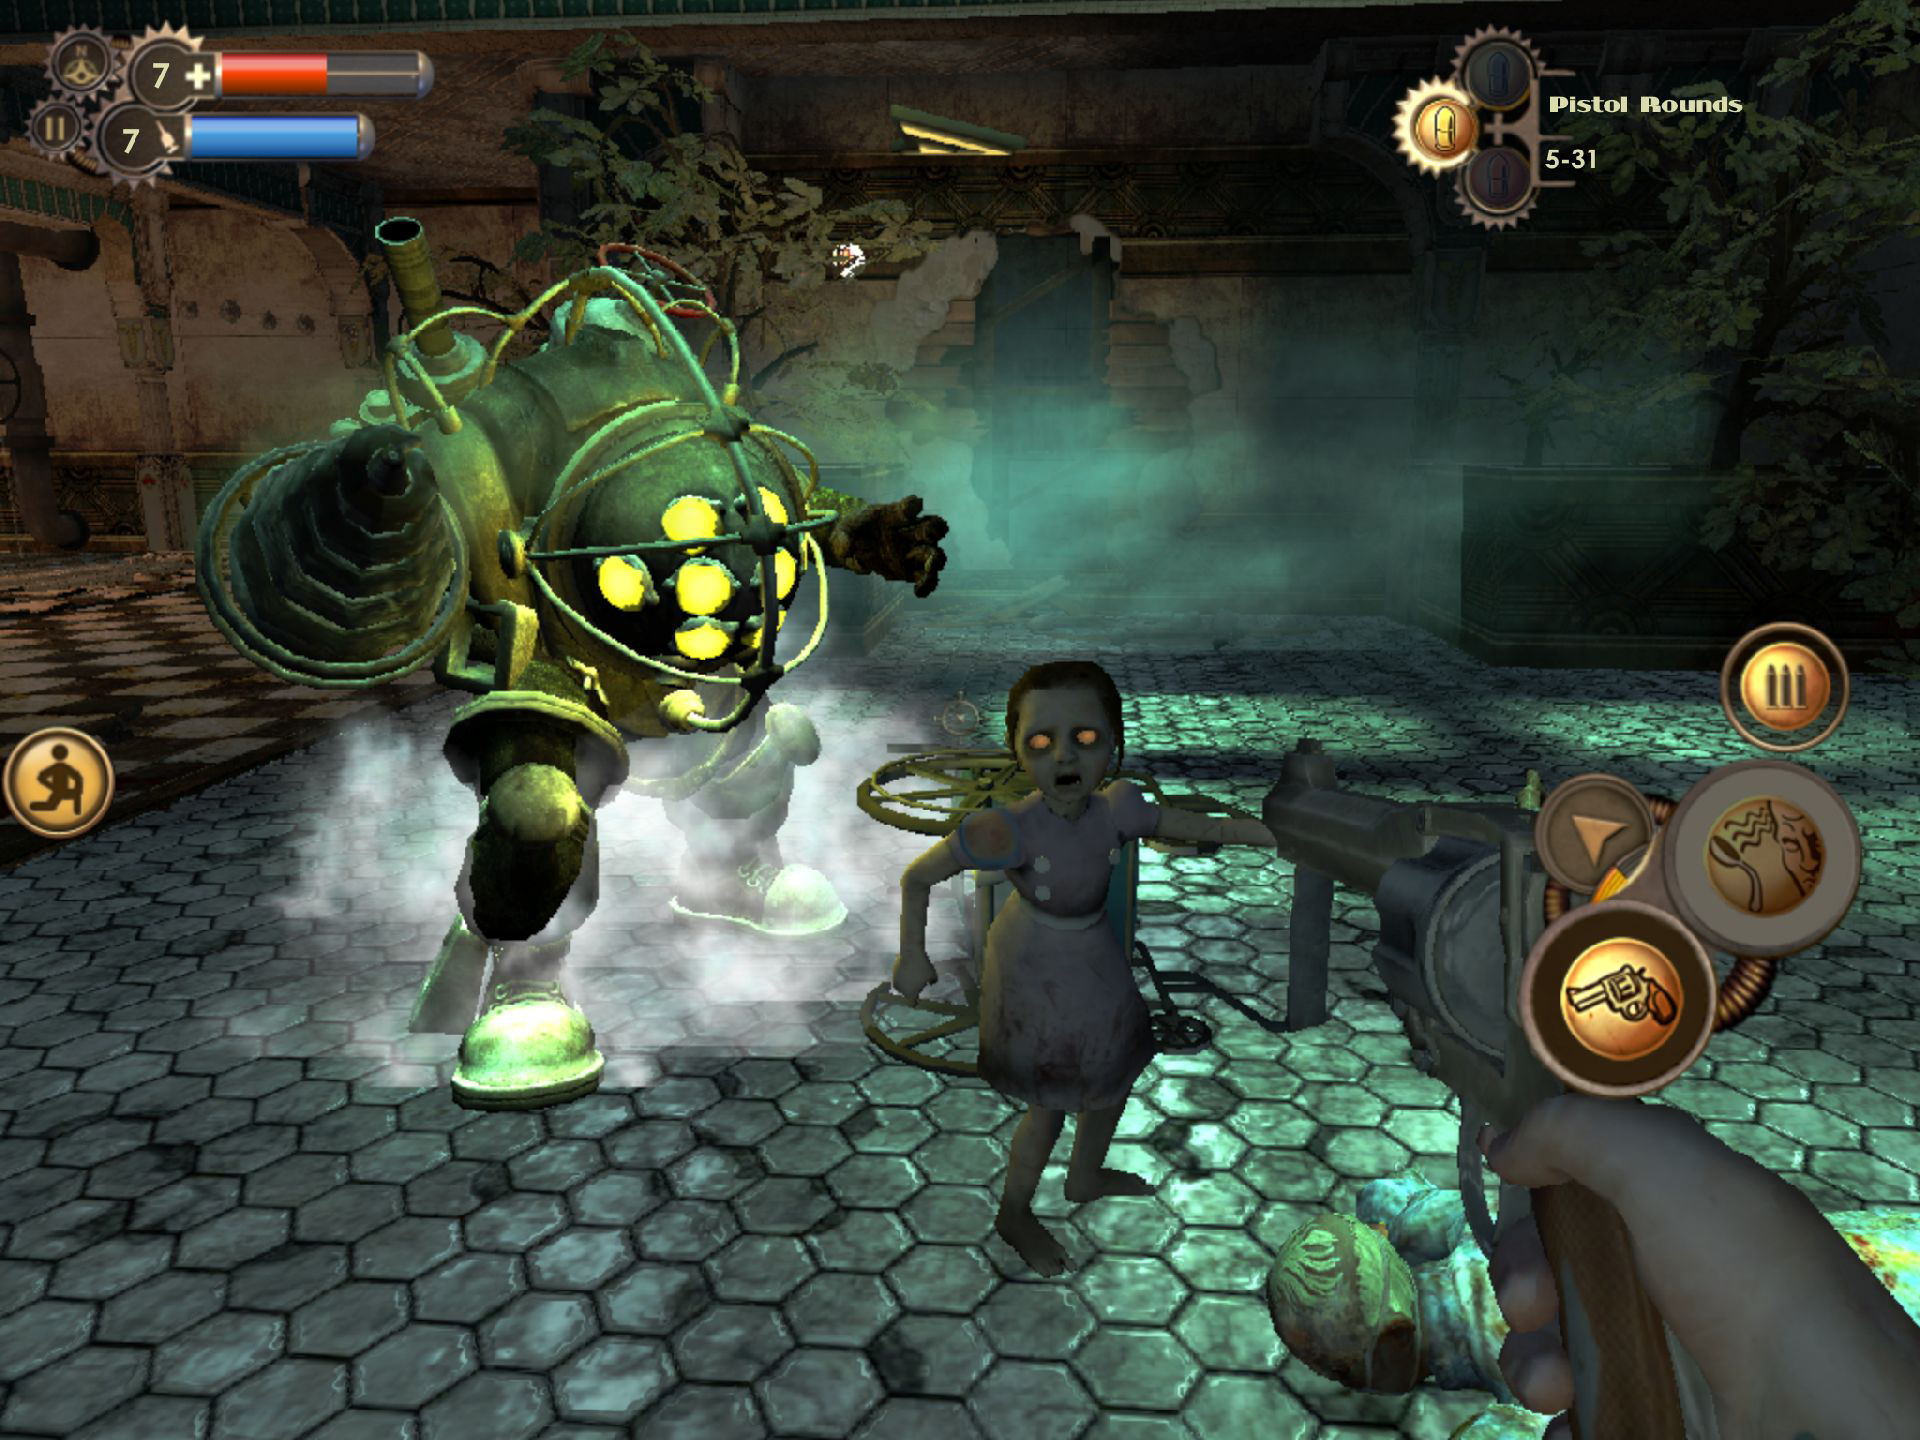 Bioshock for iOS has seemingly been removed from the App Store